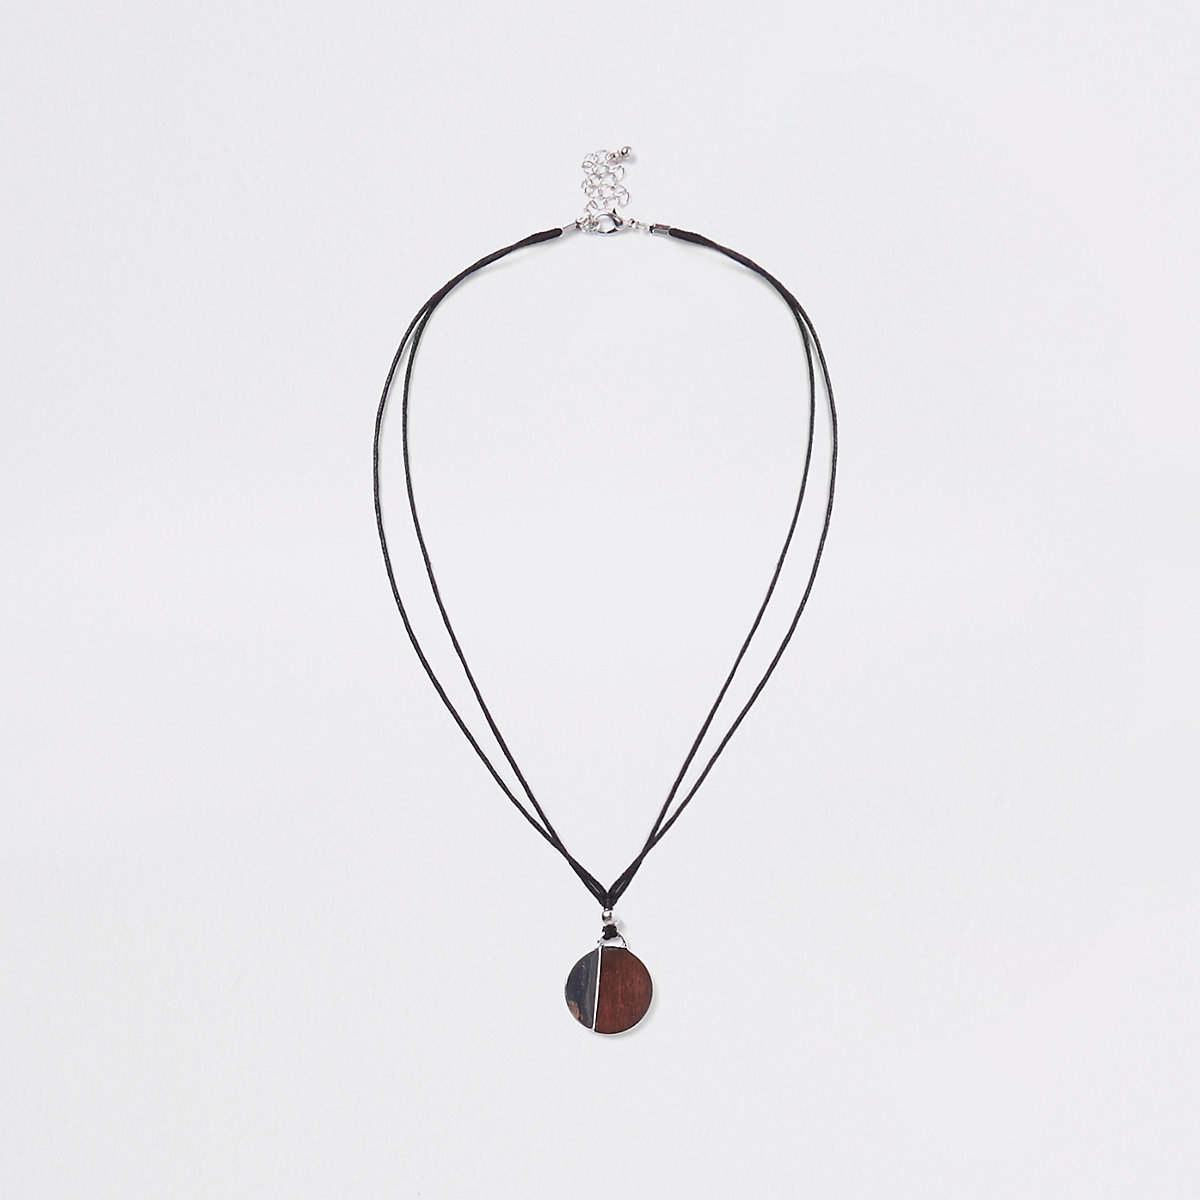 Brown wooden circle rope necklace